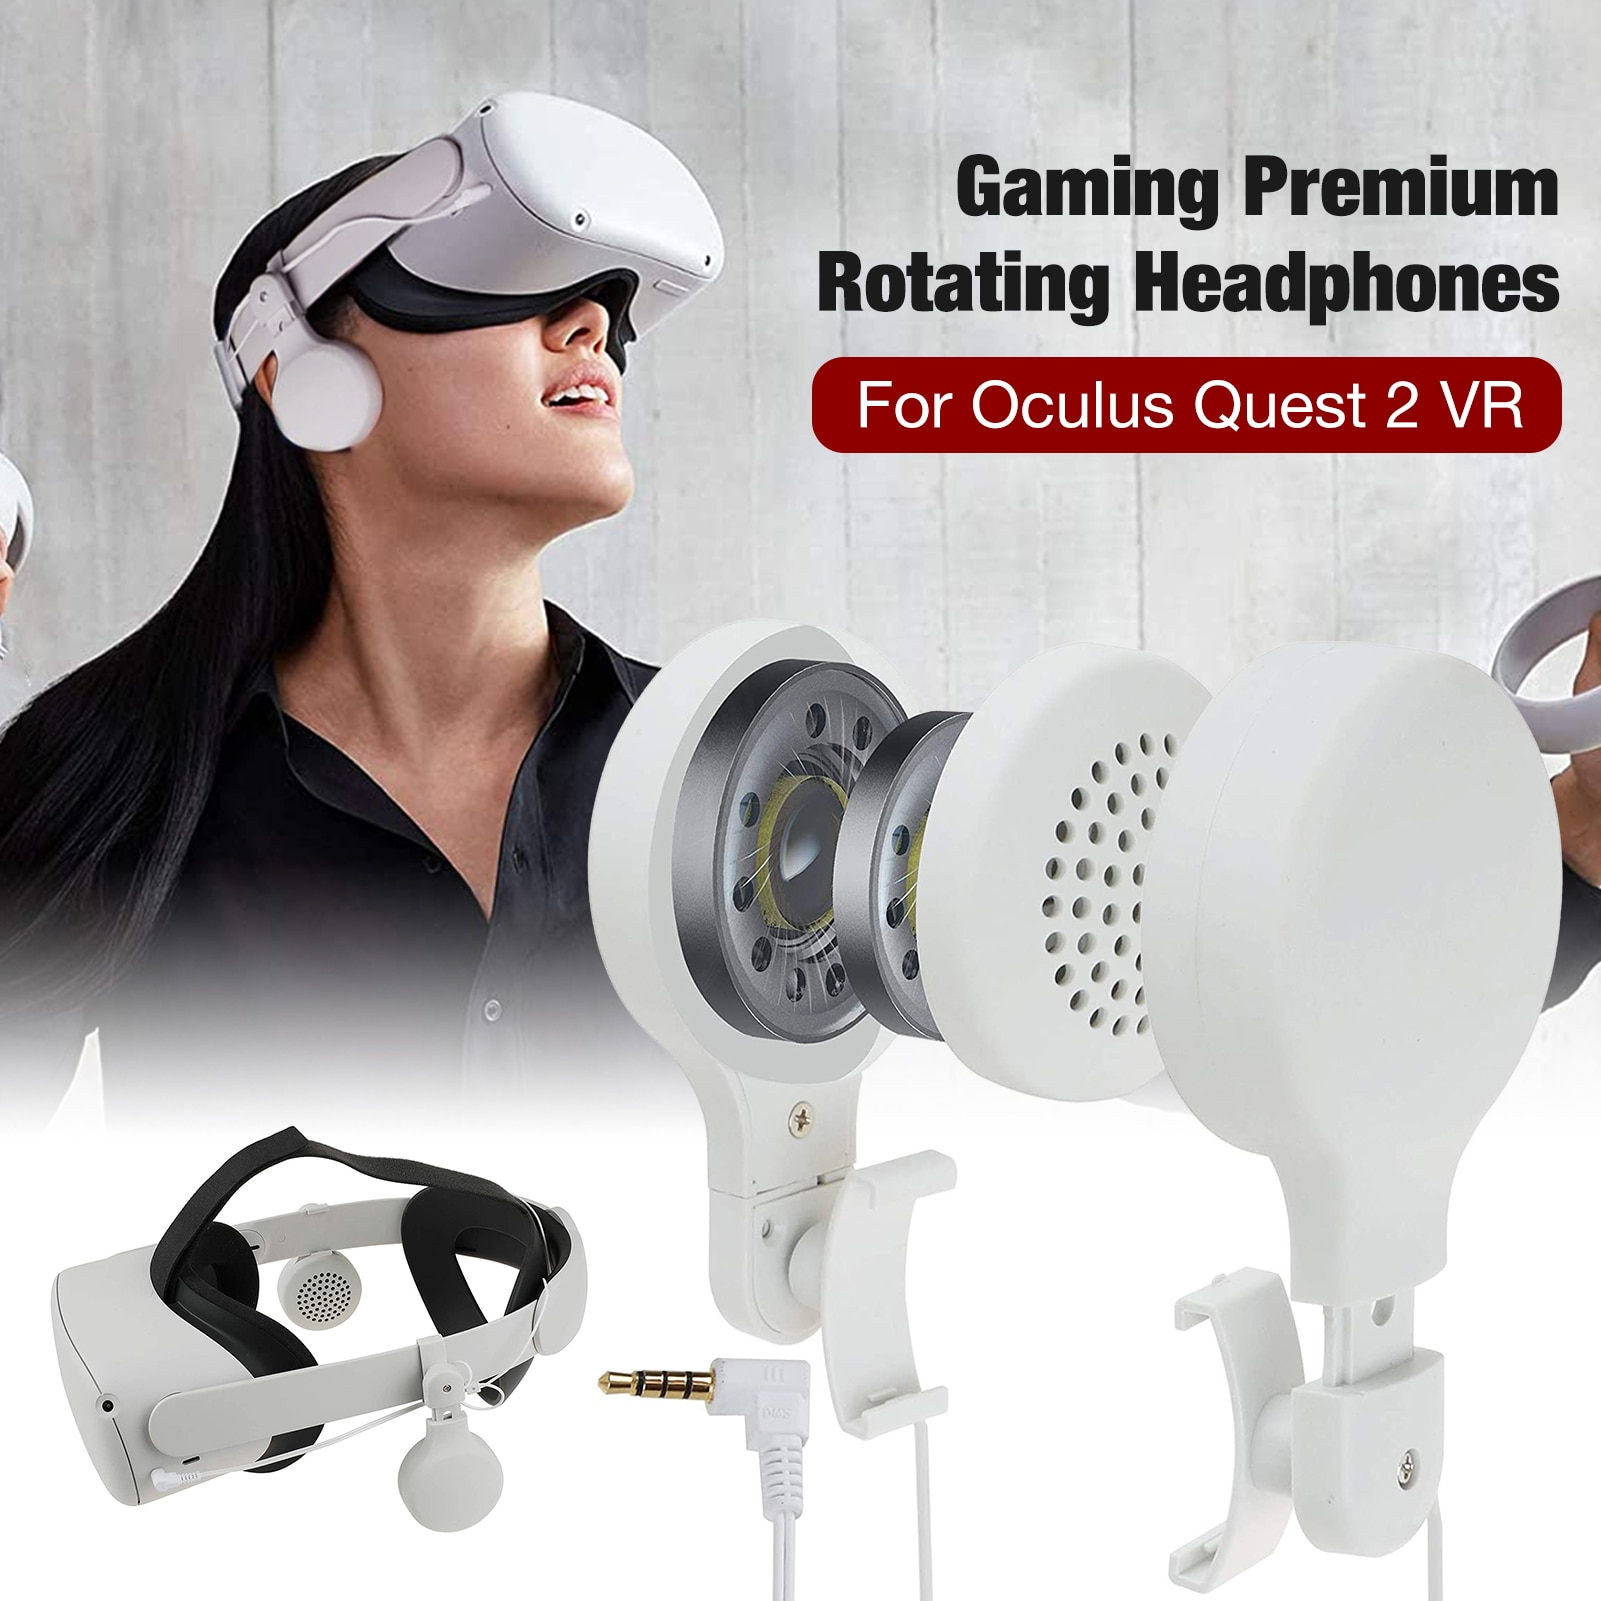 Vr Oculus Quest 2 Accessories Vr Headset Headphones Can Be Rotated 360 Degrees-up And Down Stretch Adjustment For Oculus Quest 2